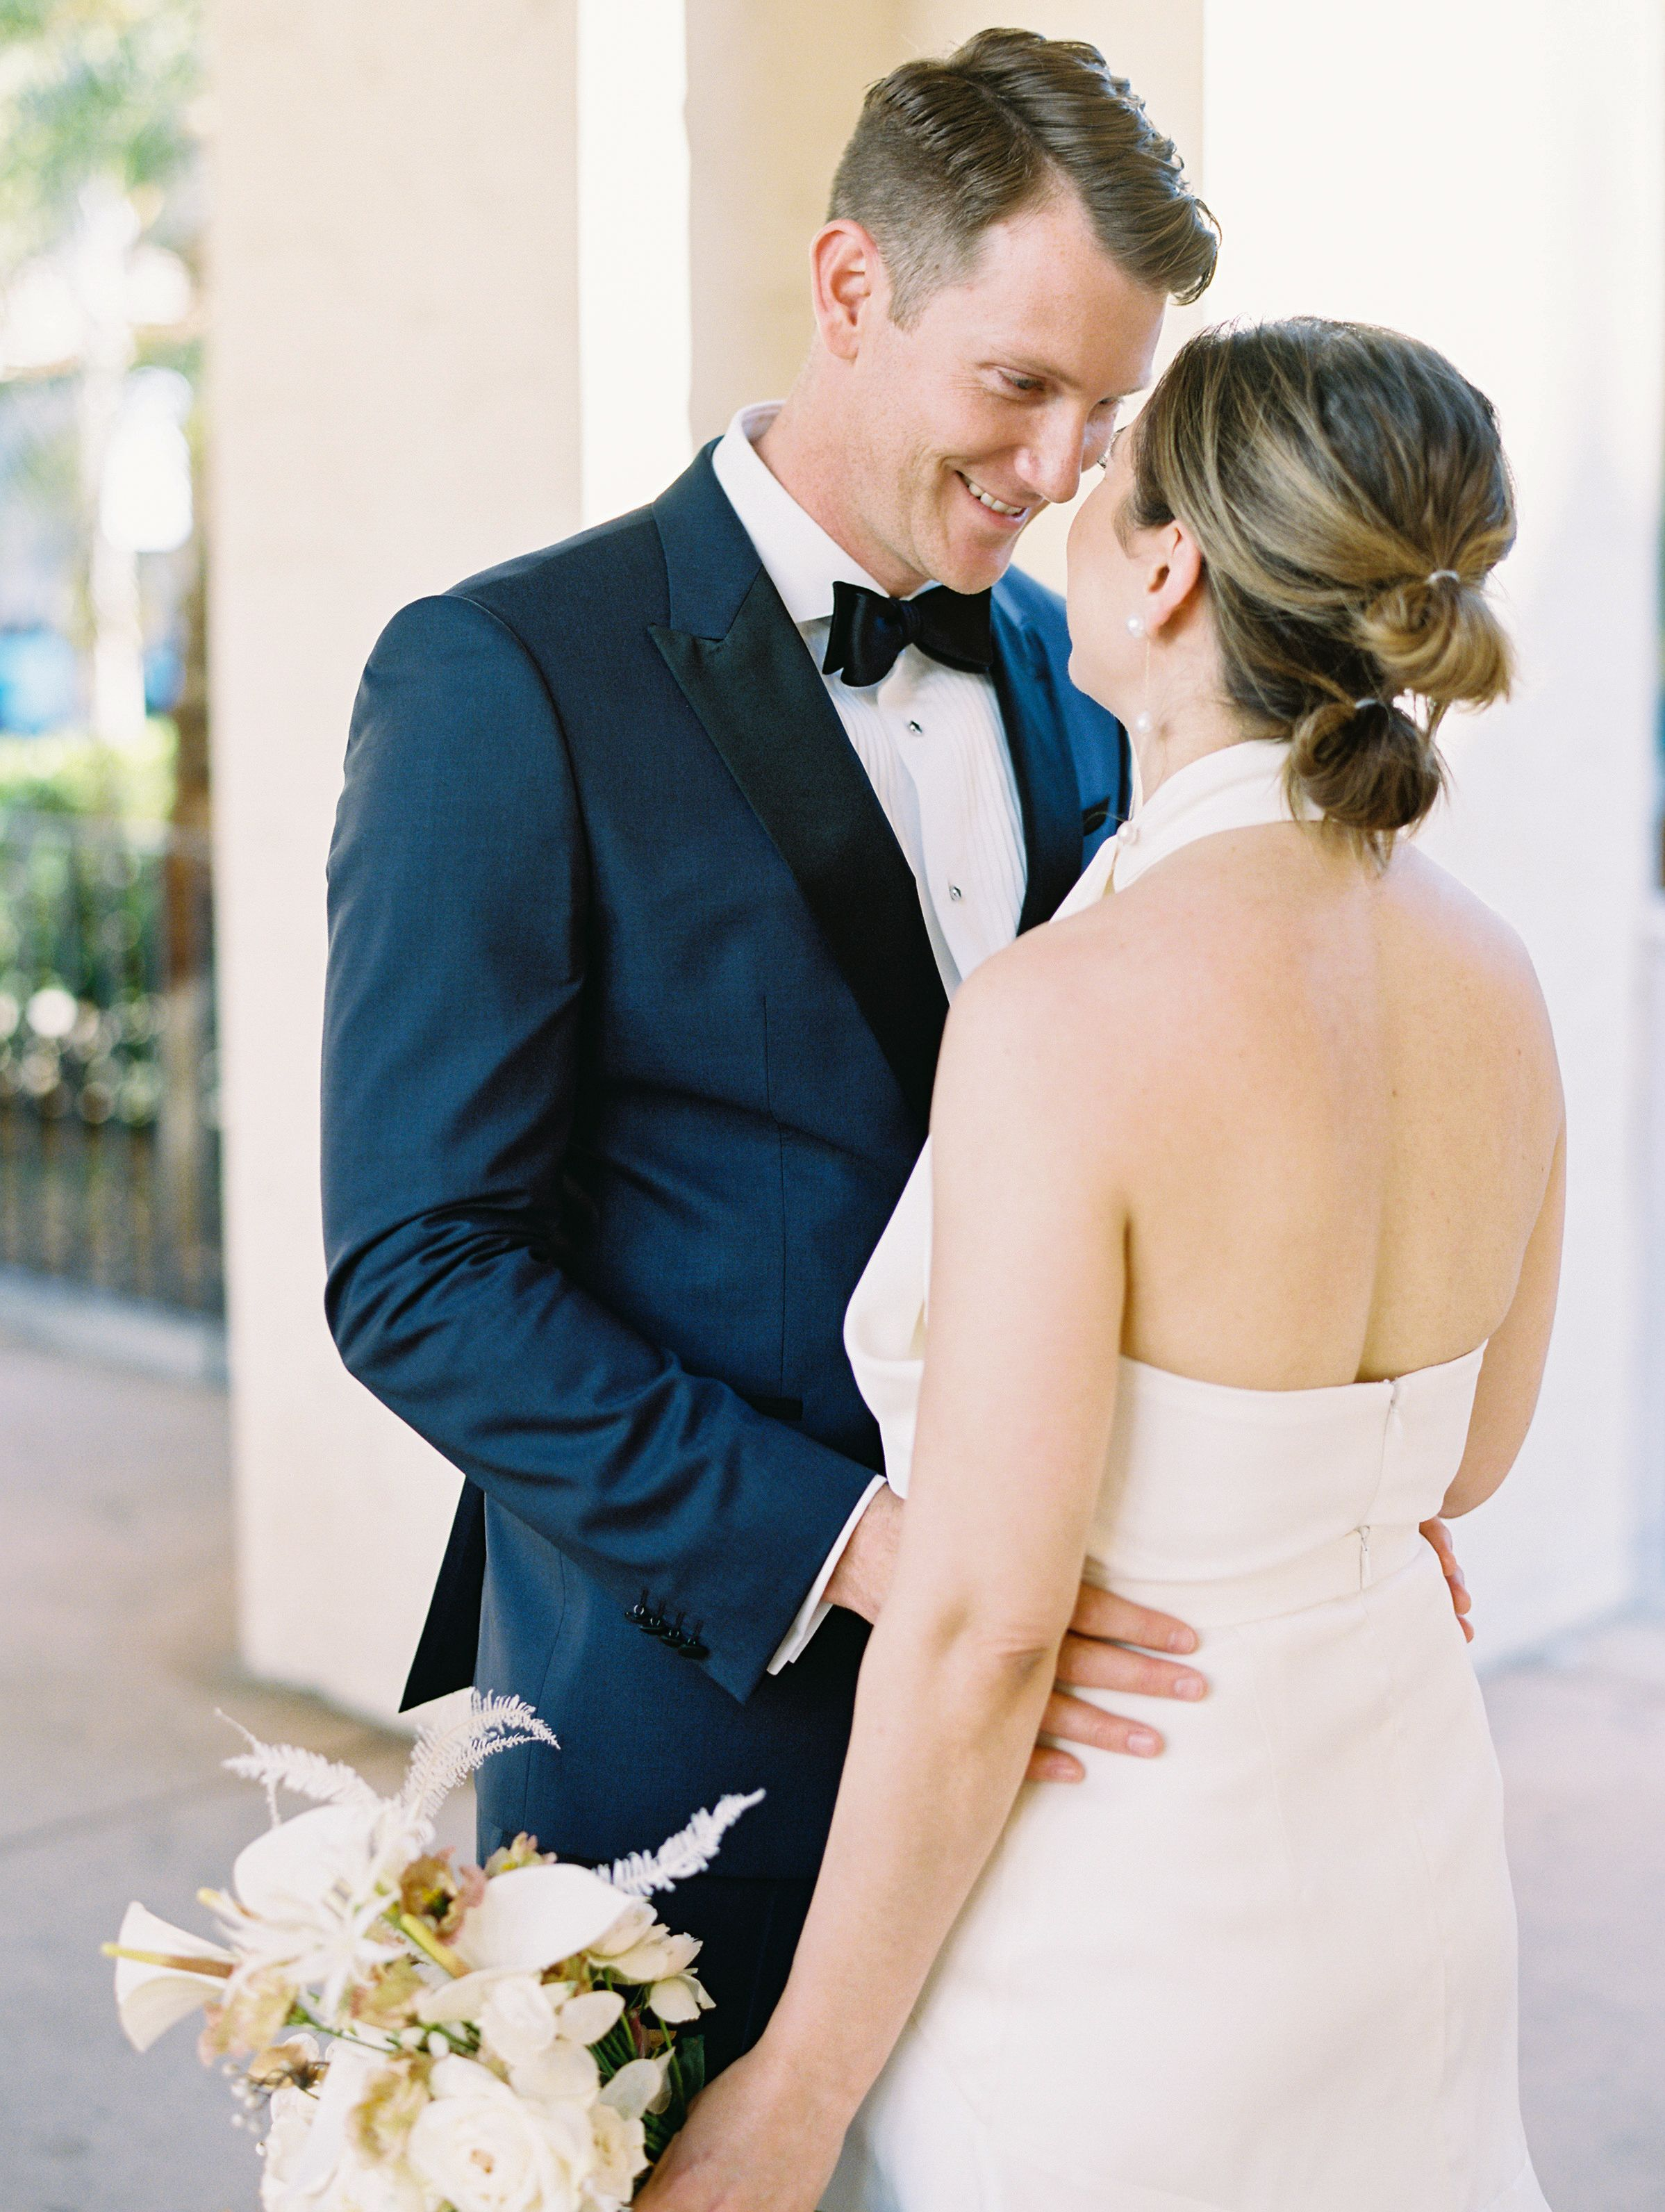 Danyelle And Taylor S Modern Wedding At The San Diego Museum Of